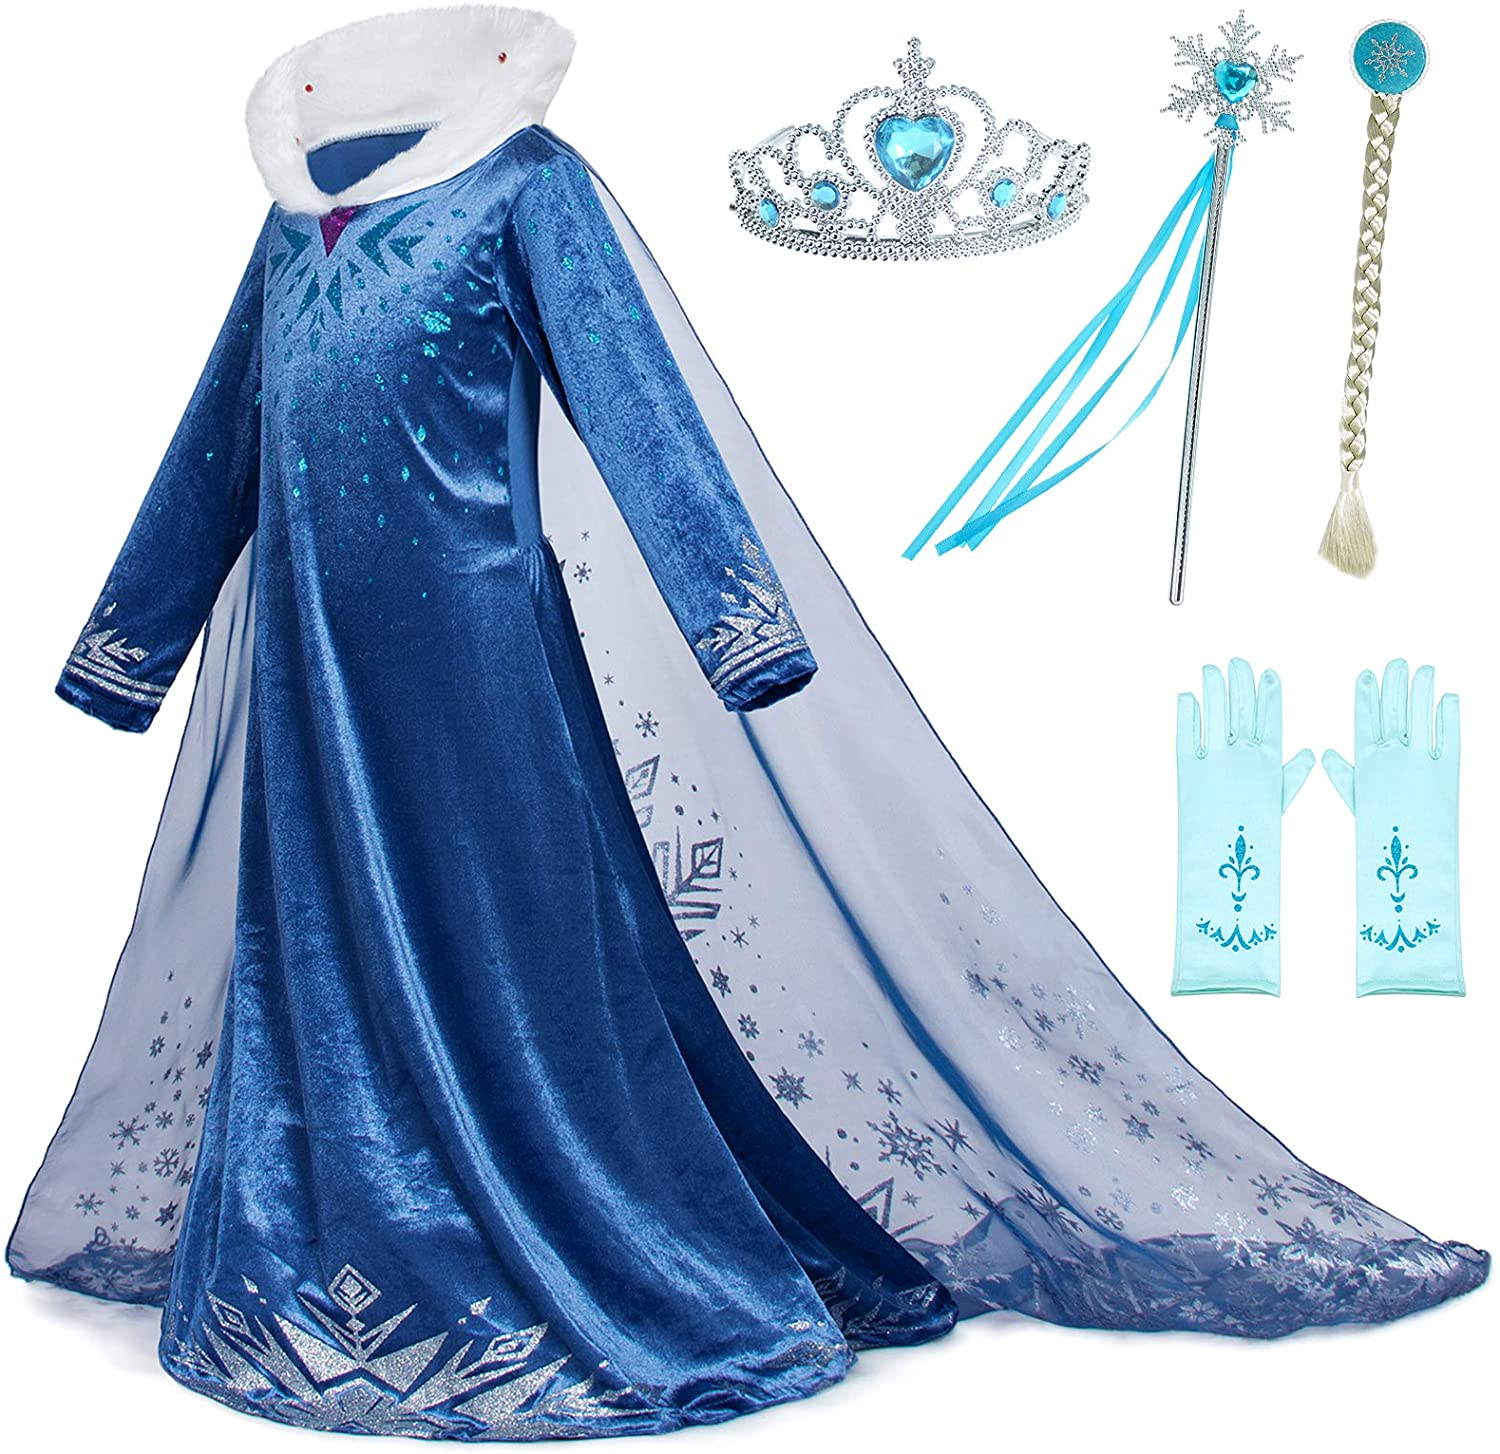 Party Chili Princess Dress Up for Little Girls Costumes with Gloves,Crown,Wand,Wig Accessories Age of 2-11 Years